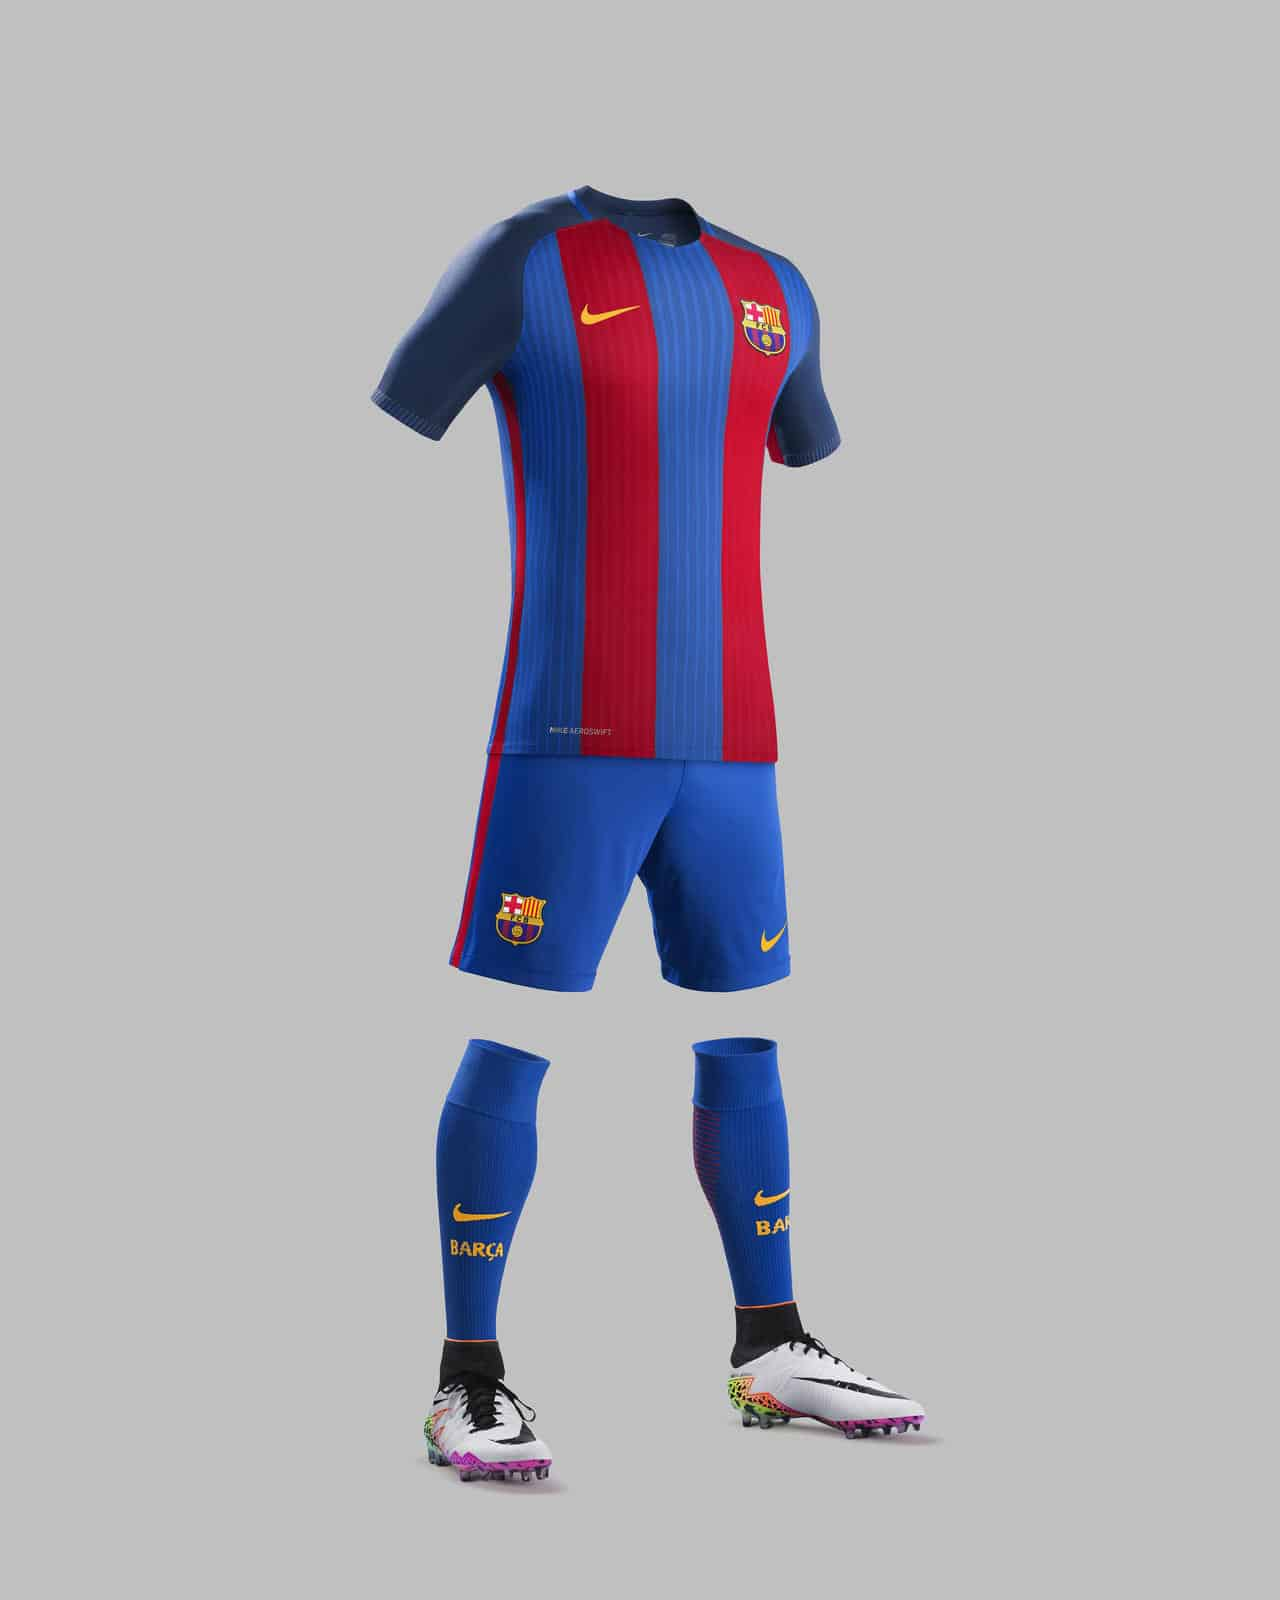 le fc barcelone d voile ses maillots 2016 2017 sign s nike. Black Bedroom Furniture Sets. Home Design Ideas